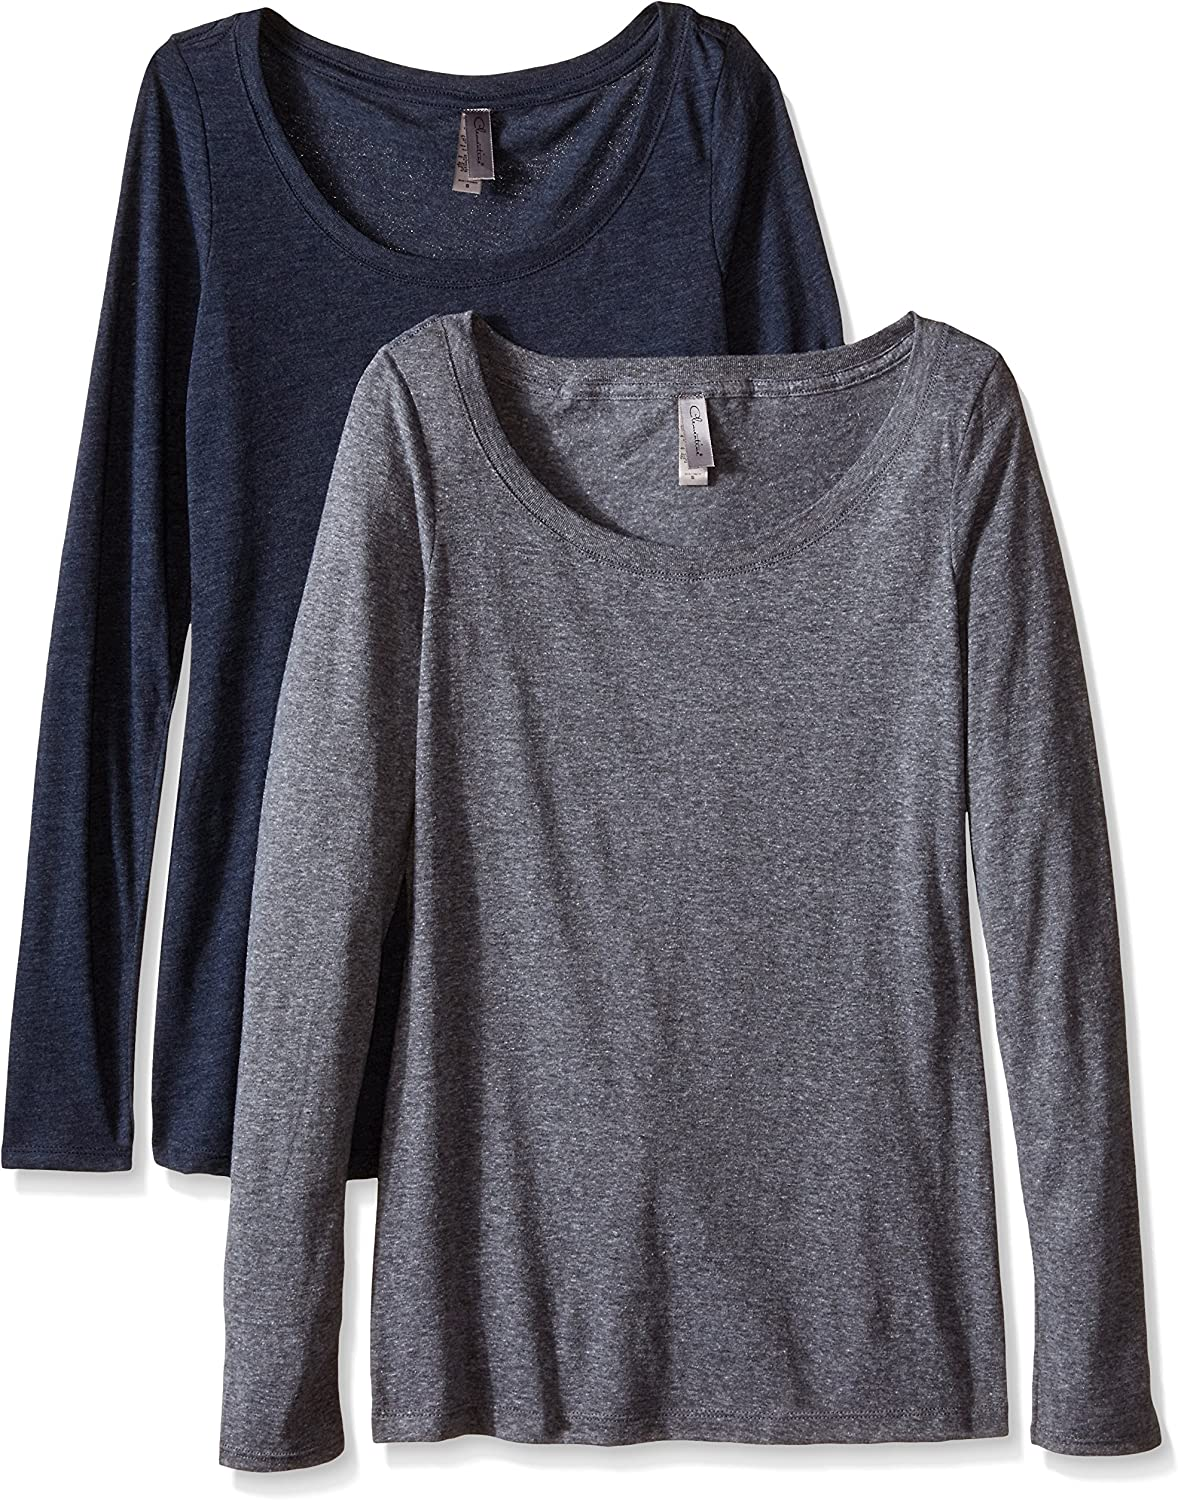 Clementine Apparel 2 Pack Long Sleeve Ne Reservation T Tag Shirts Scoop Easy Max 78% OFF